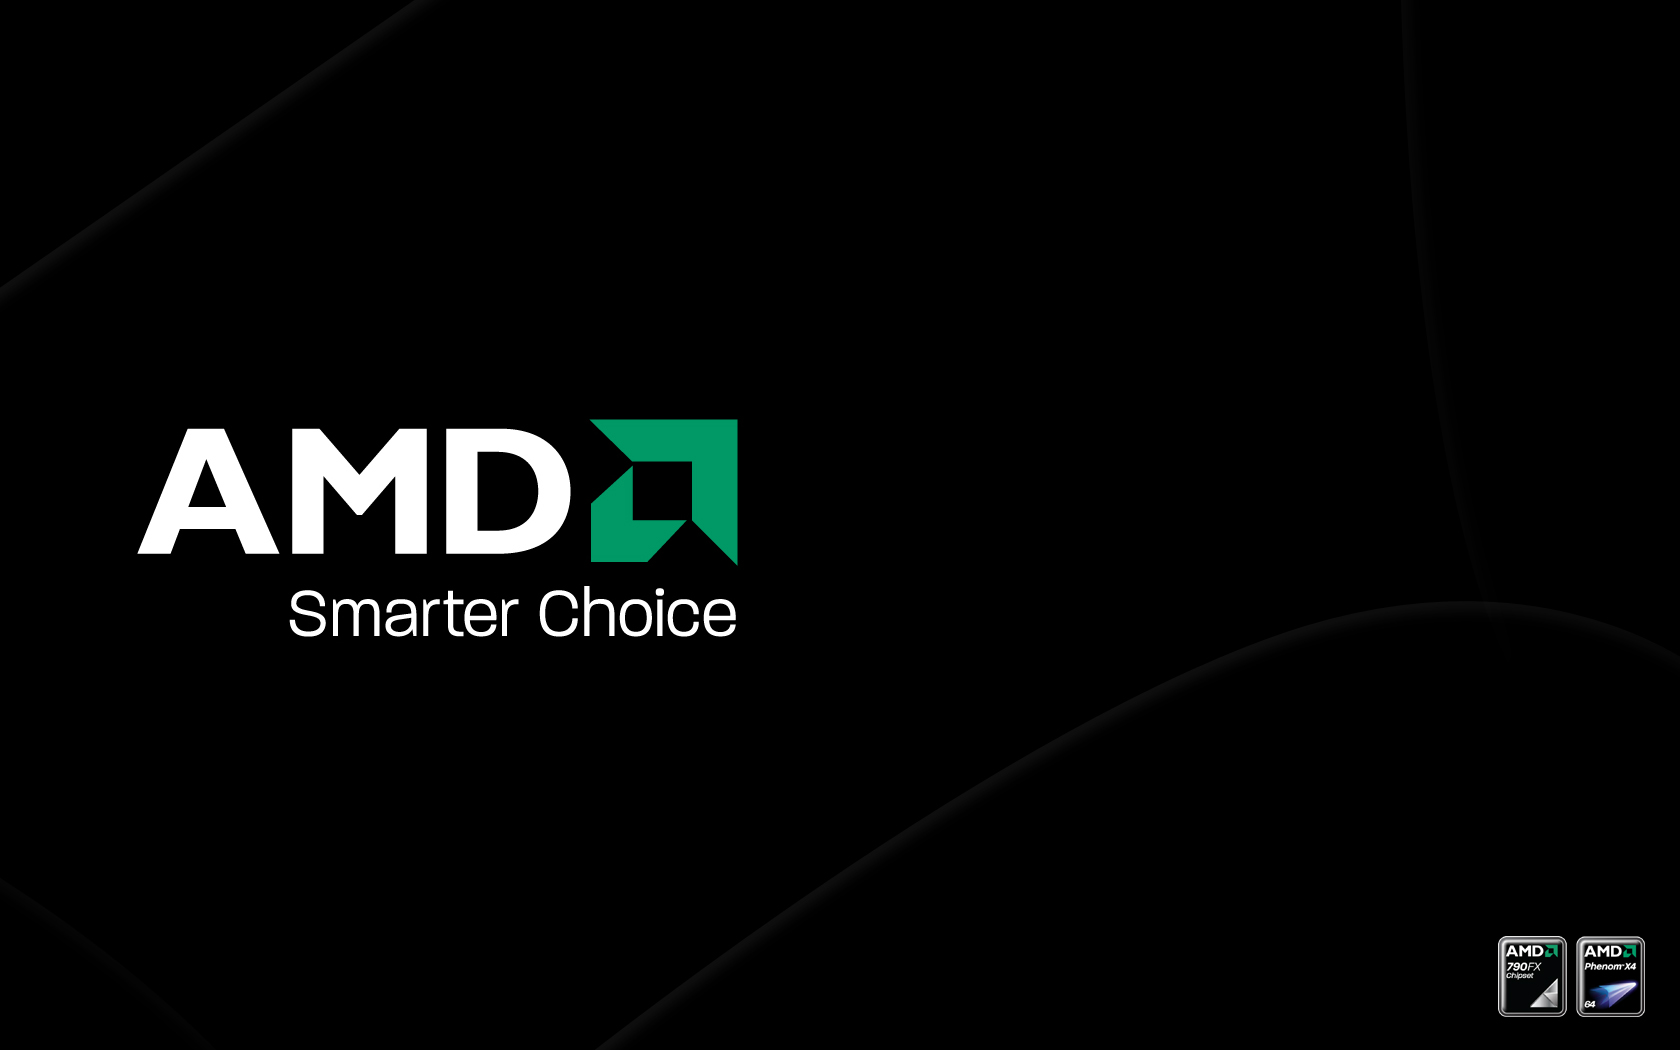 Amd Wallpaper 1920x1080 Wallpapersafari